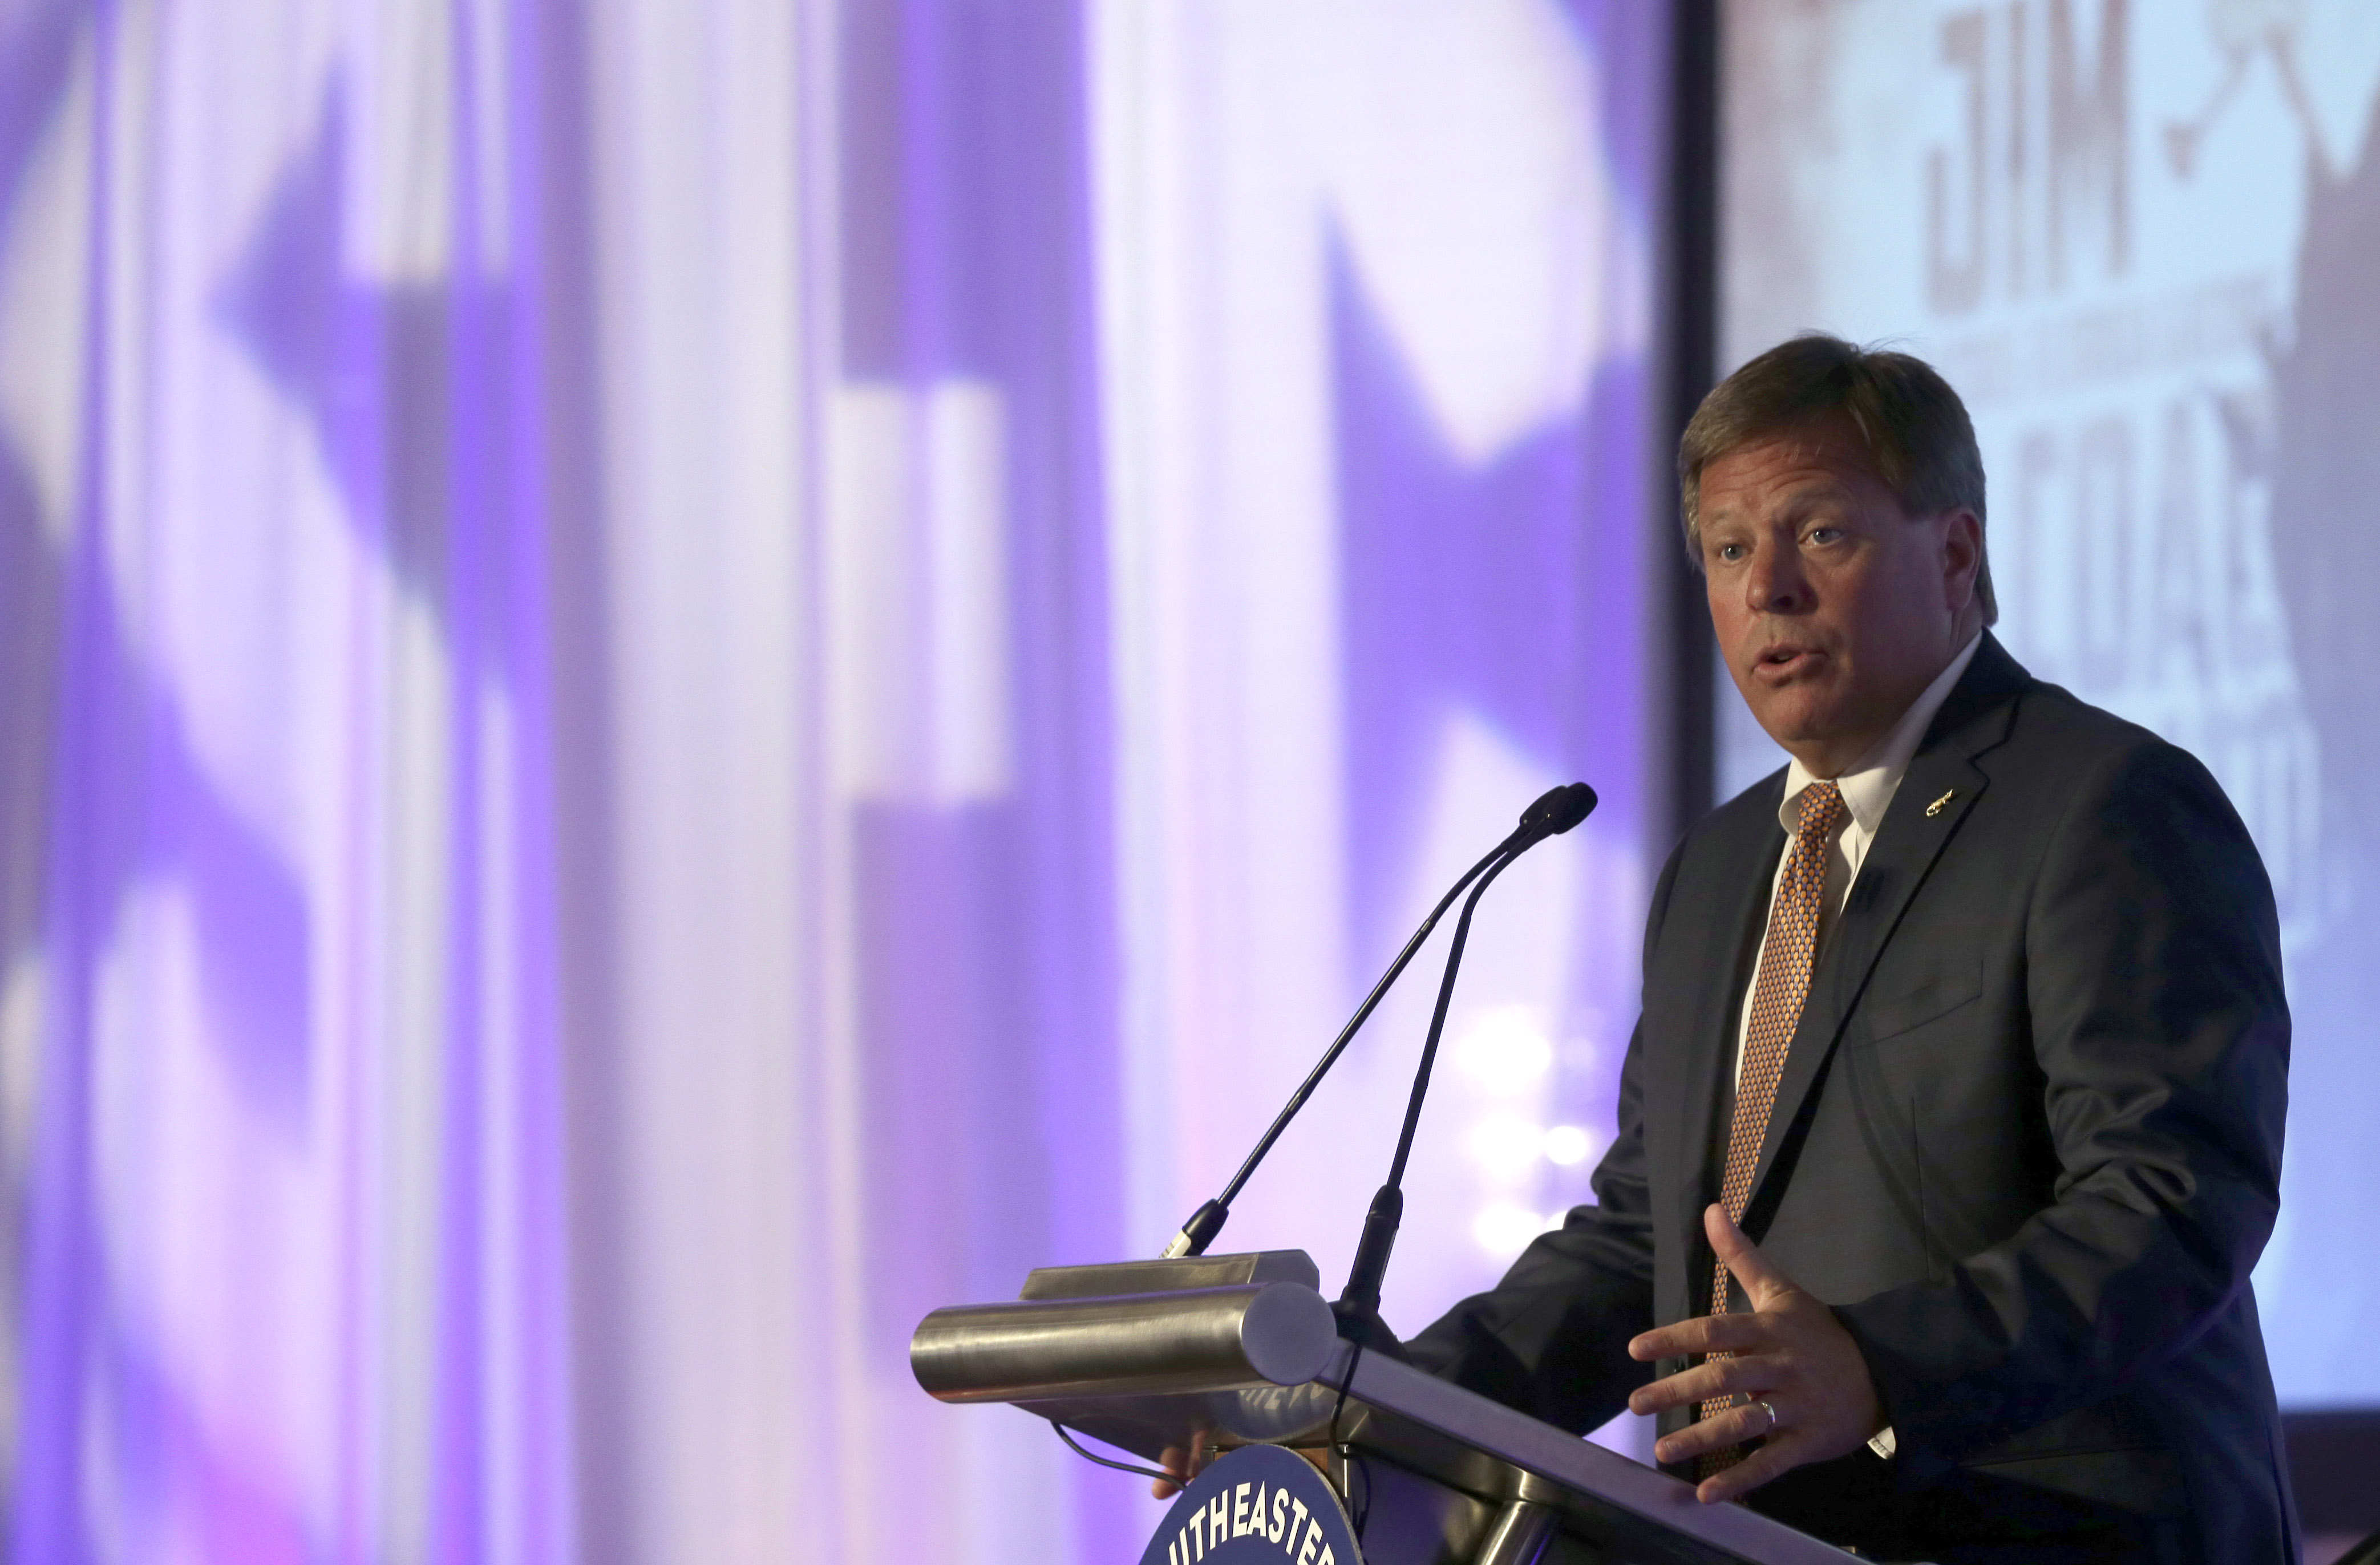 Florida coach Jim McElwain speaks to the media during the NCAA college football Southeastern Conference Media Days, Monday, July 13, 2015, in Hoover, Ala. (AP Photo/Butch Dill)